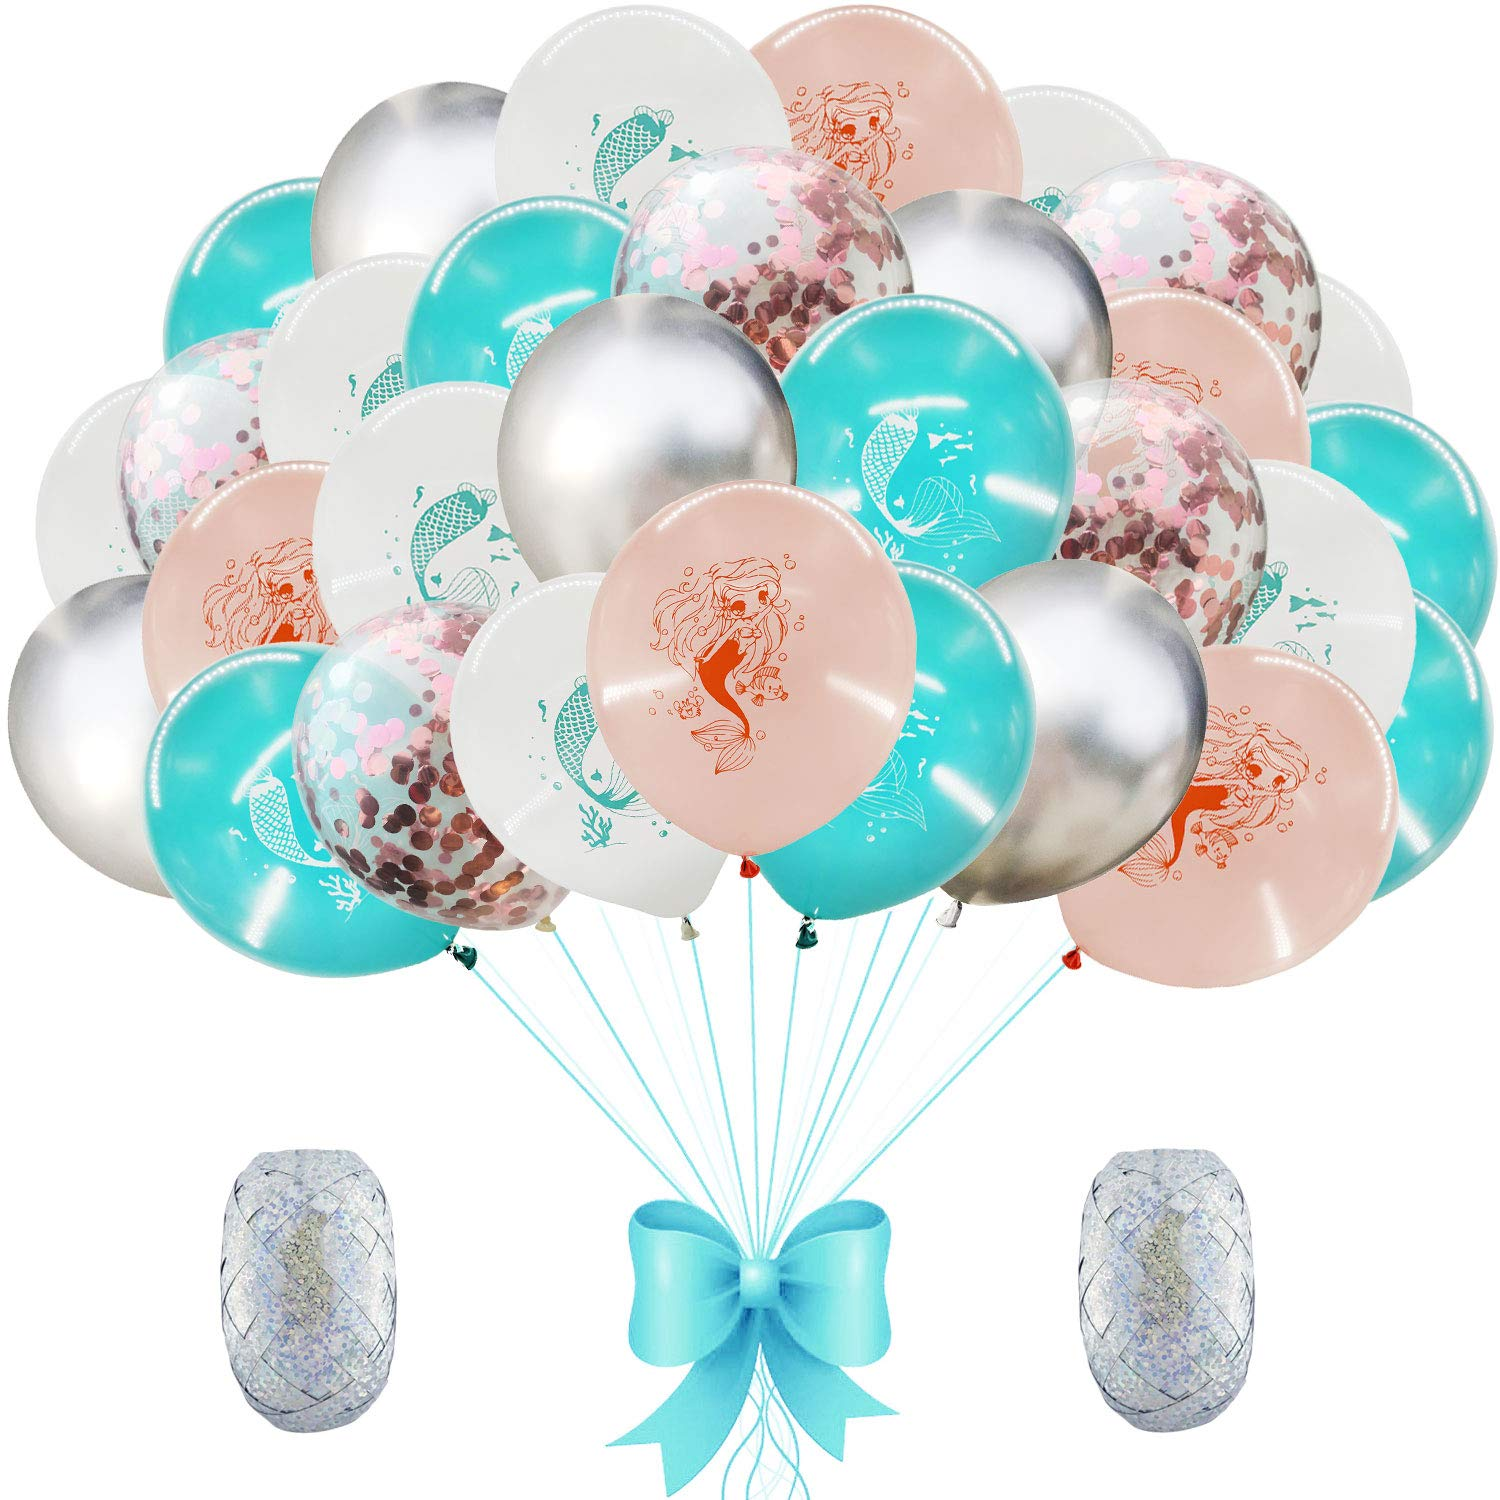 16 pcs Donut Balloons Pinks & Gold by Nerdy Words Balloons Party ...